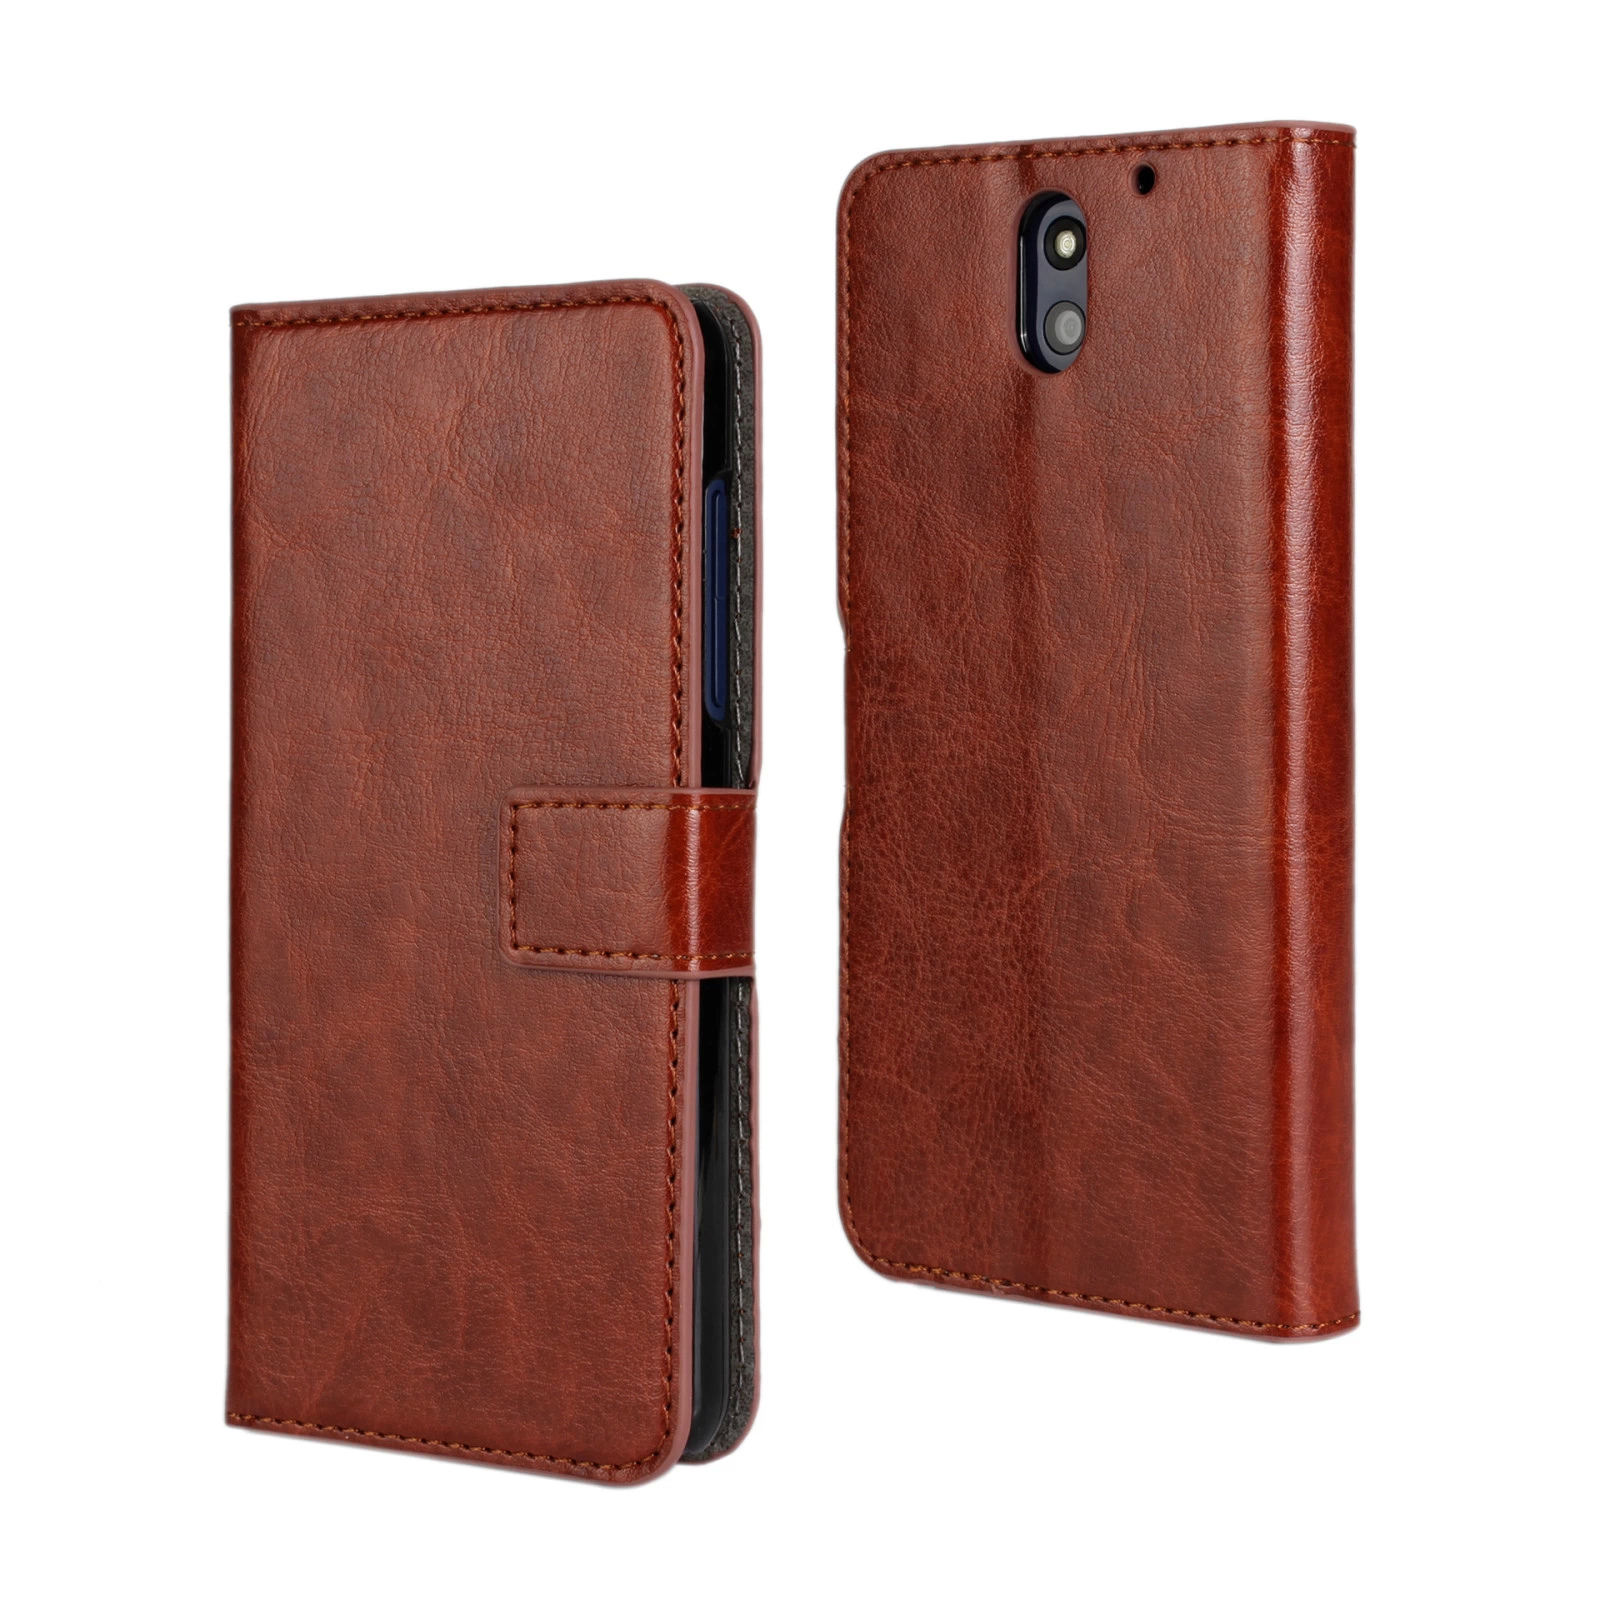 For HTC Desire 610 Cover Case Wallet Leather Book Purse Mobile Phone Shell Pouch Bag Coque Fundas Case Cover For HTC Desire 610(China (Mainland))